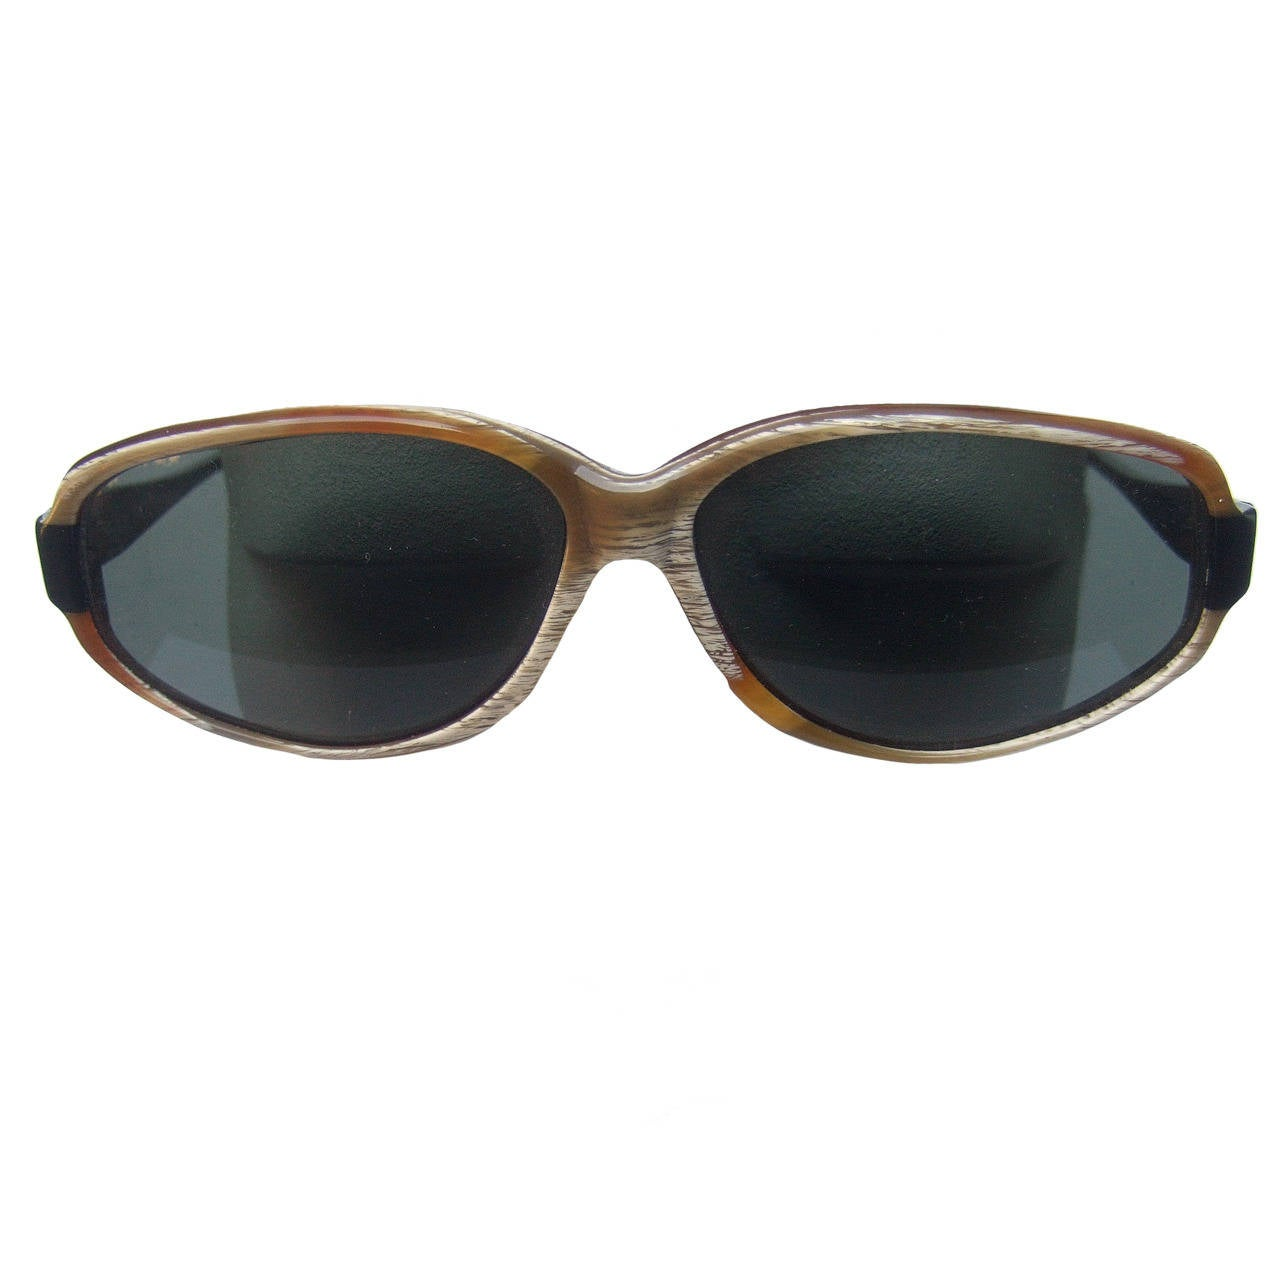 Jean Patou Paris Stylish Sunglasses Made in France For Sale